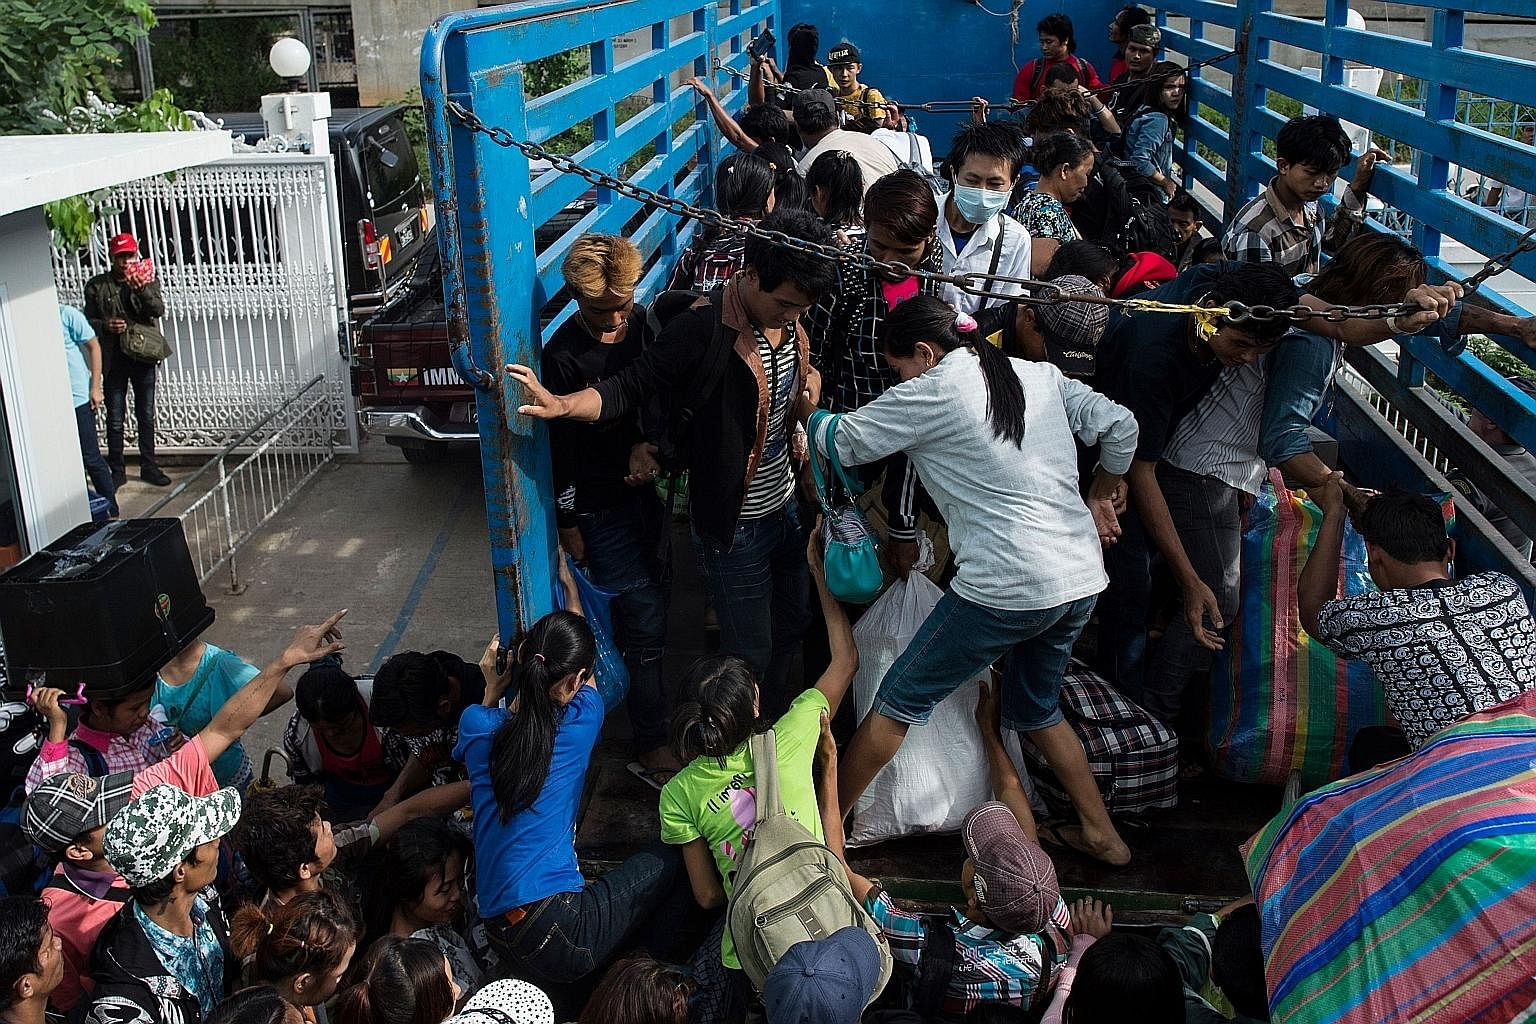 Migrant workers from Myanmar leaving Thailand last month, after Bangkok toughened rules against undocumented workers. The writer says that, going forward, Asean must tap the potential of its low-skilled workers as well.